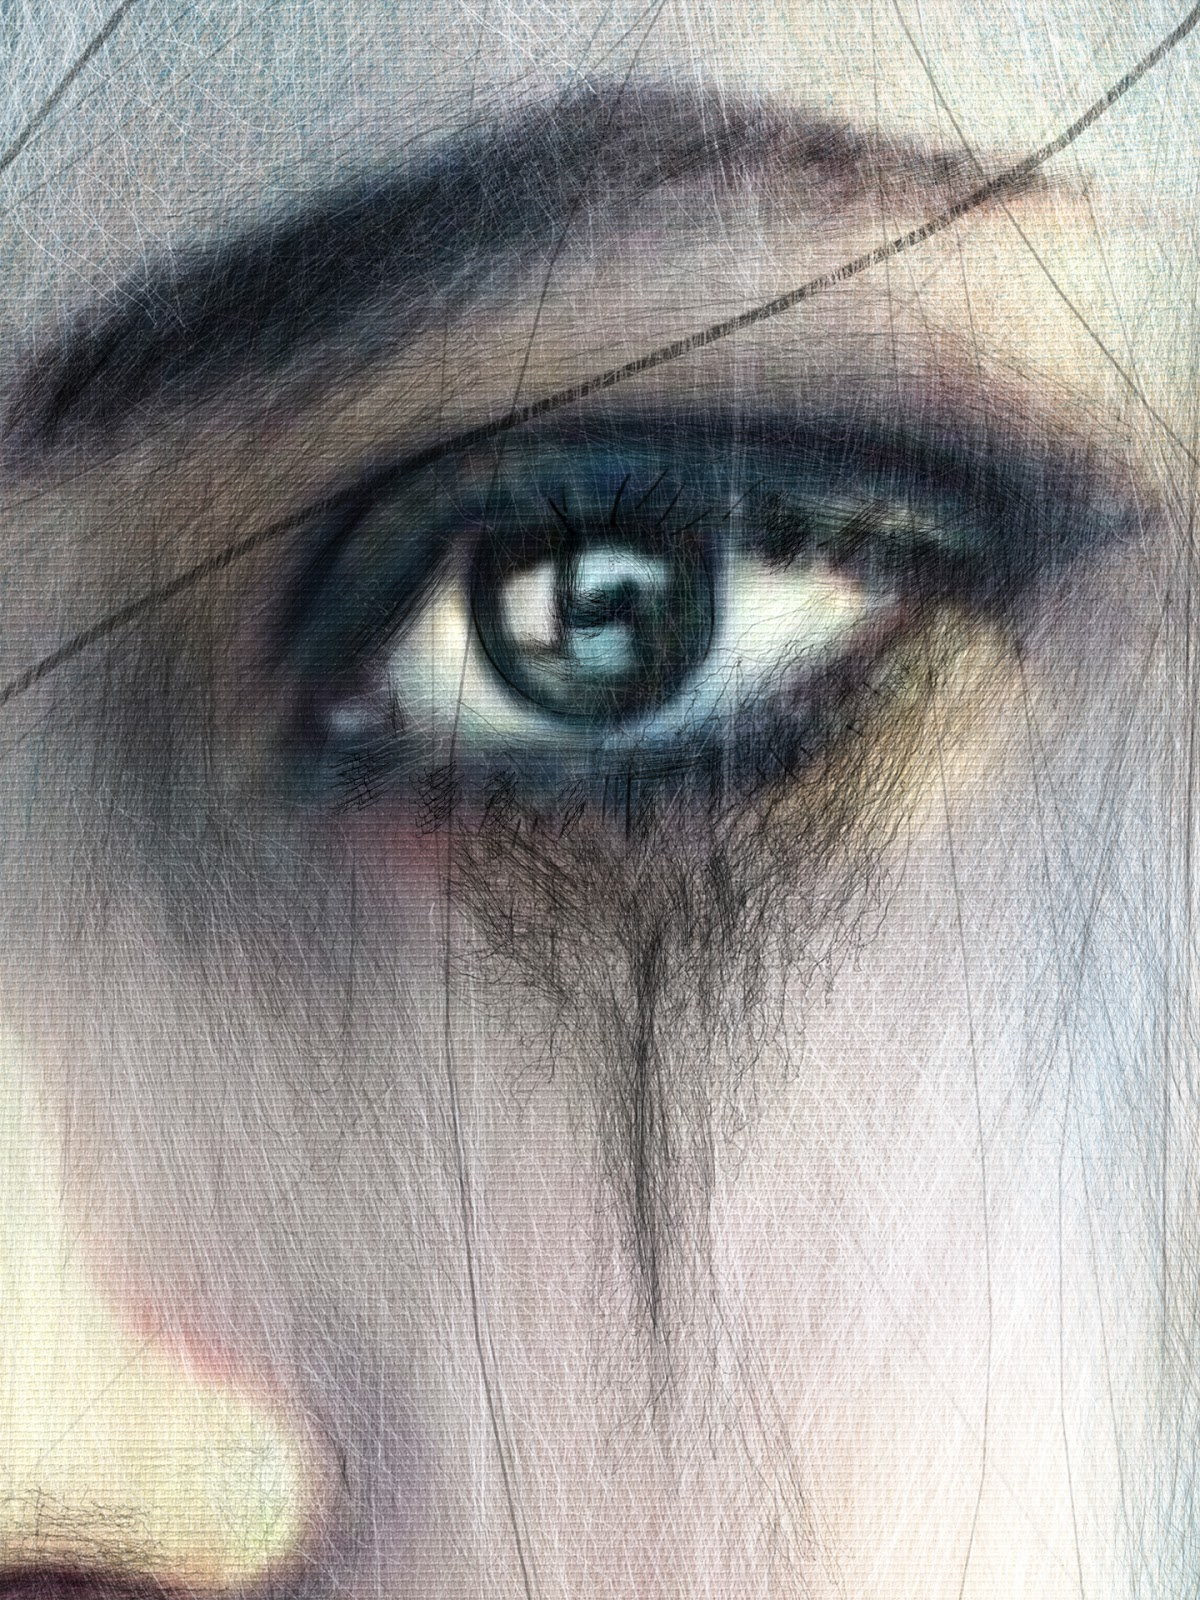 Eye painting with Corel Painter